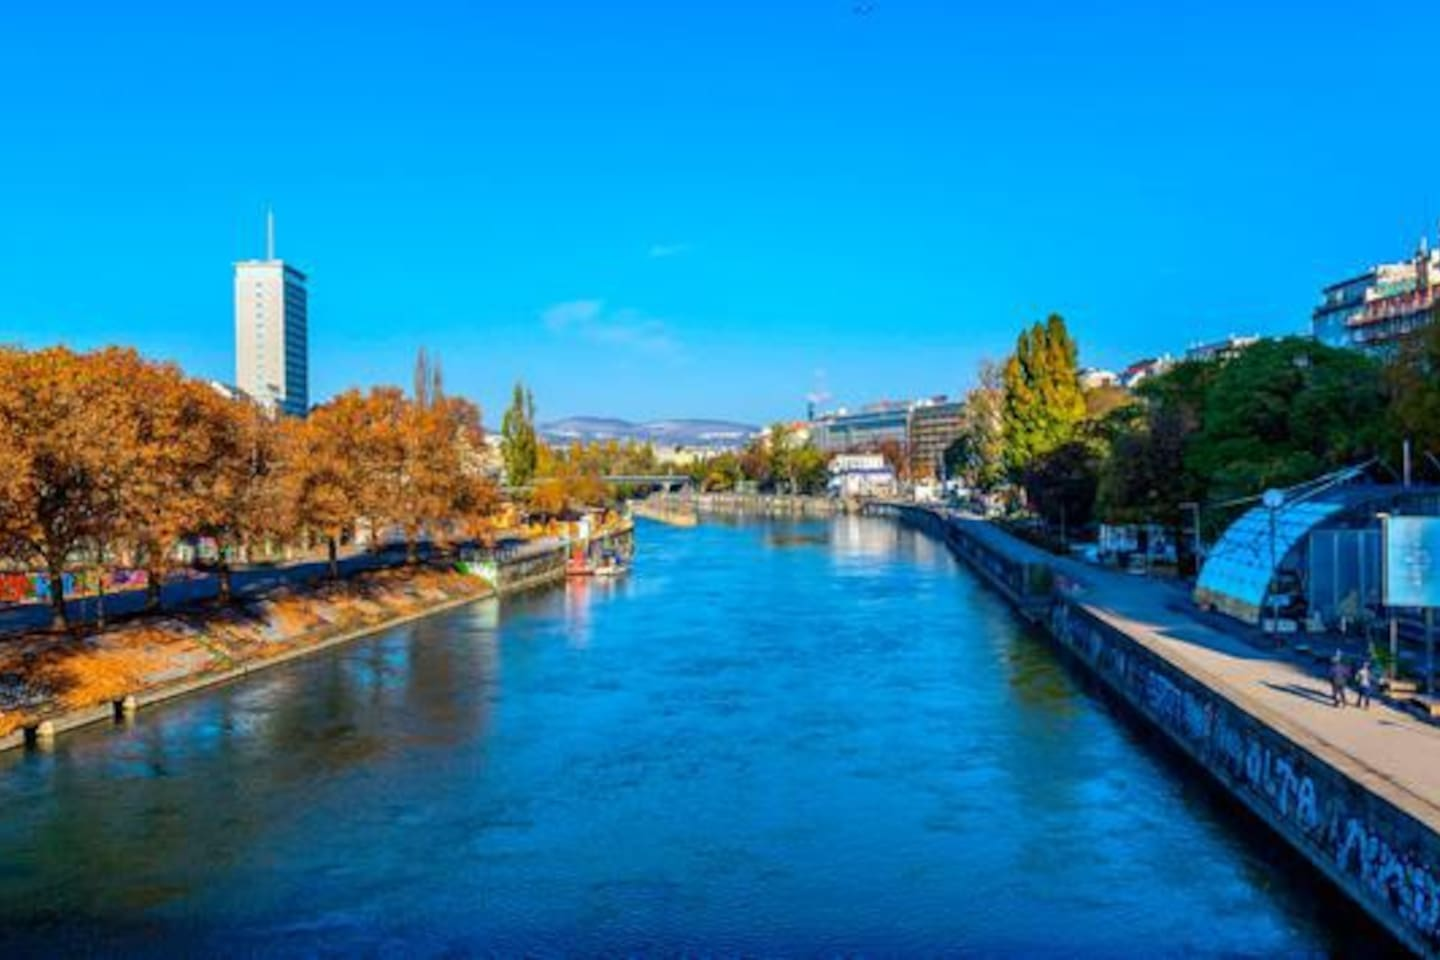 Donaukanal- 2 minutes from the apartment